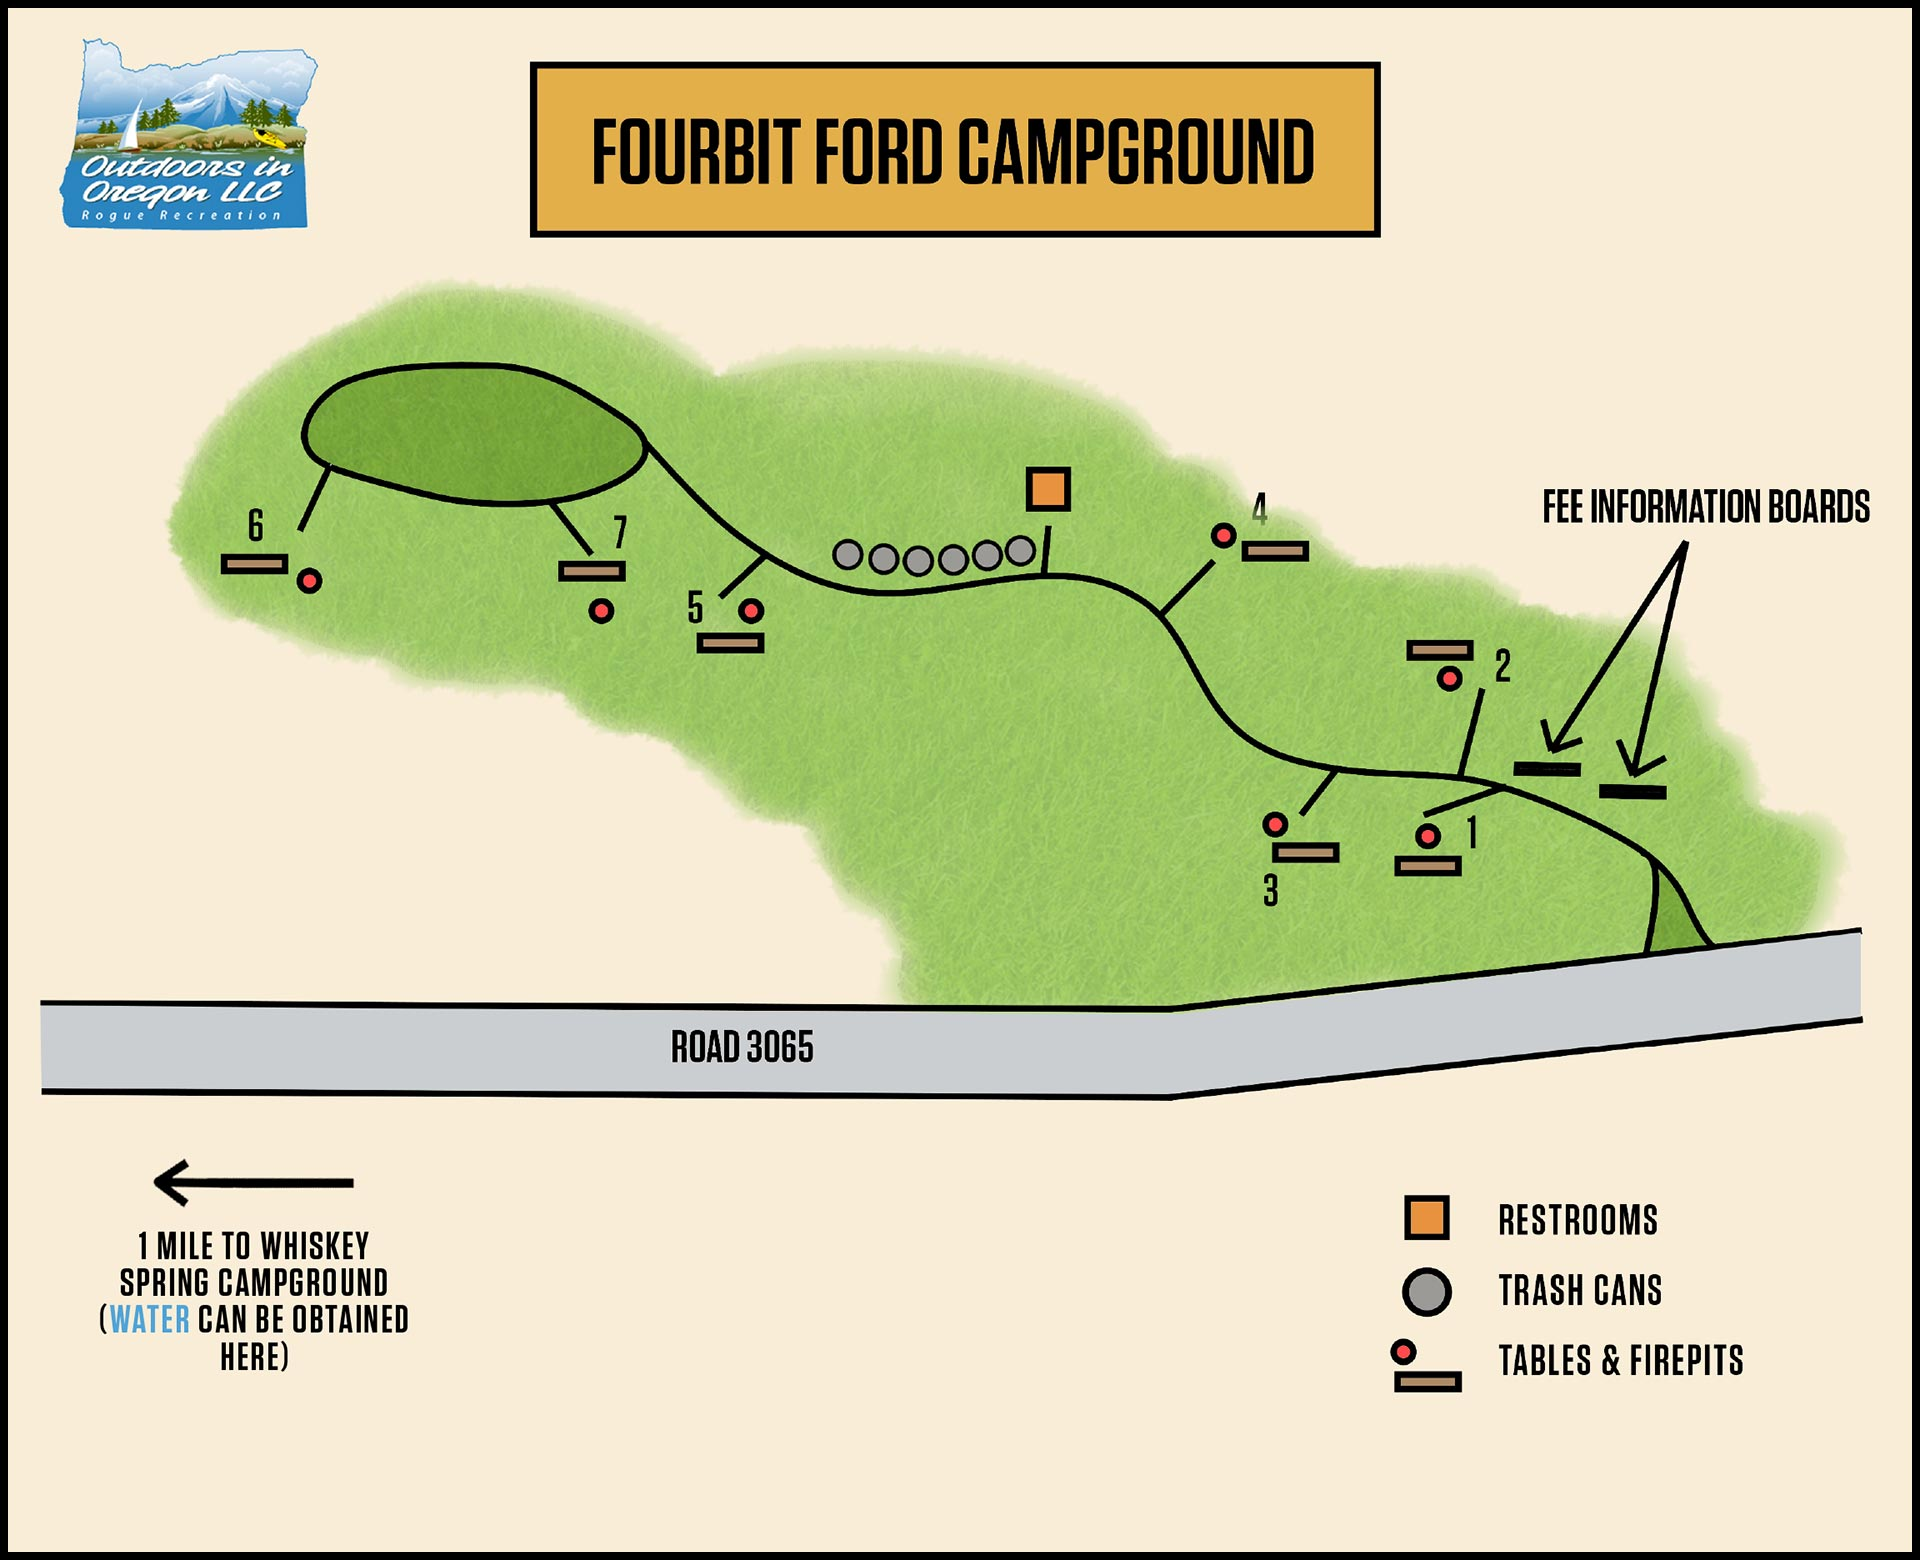 Fourbit Ford Campground Map